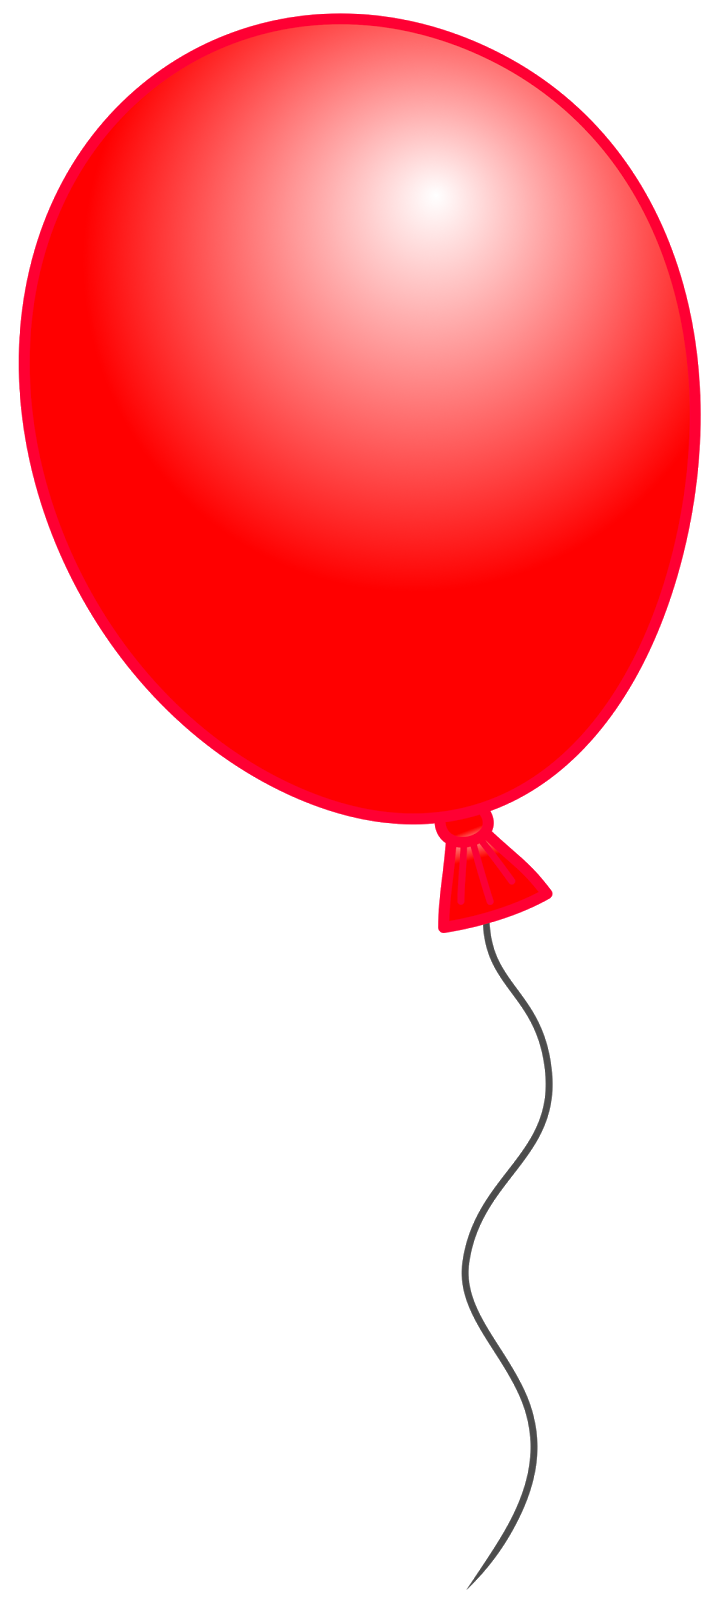 You Can Use Each Balloon On Its Own Or C-You Can Use Each Balloon On Its Own Or Create A Group As Below-7